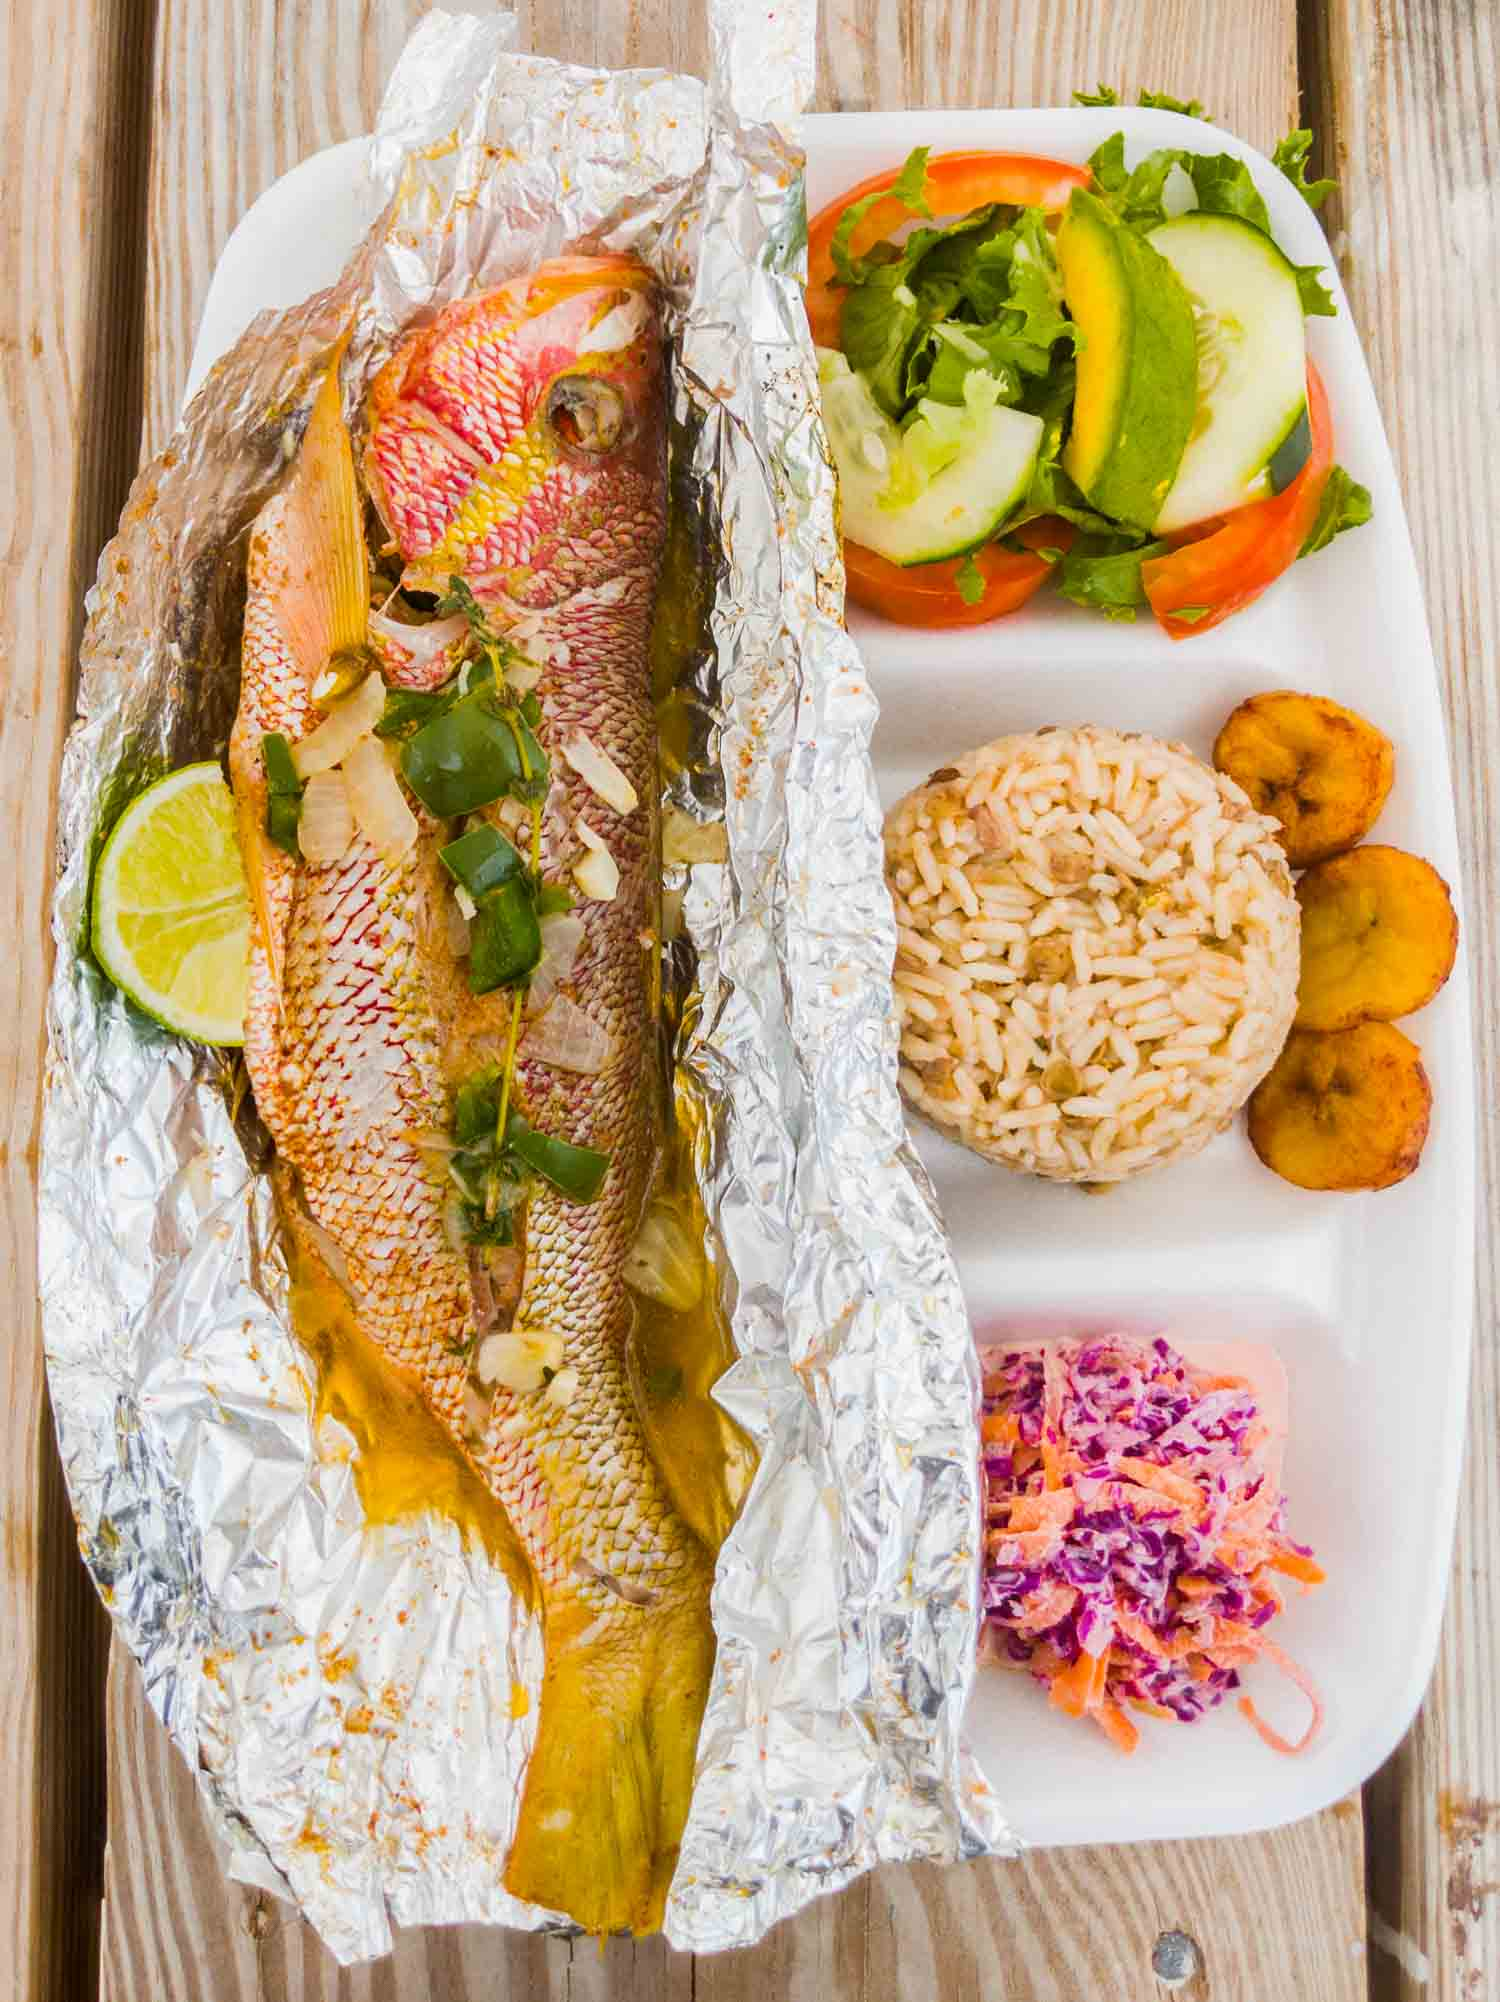 Foil roasted snapper and sides from Sunshine Shack in Anguilla.